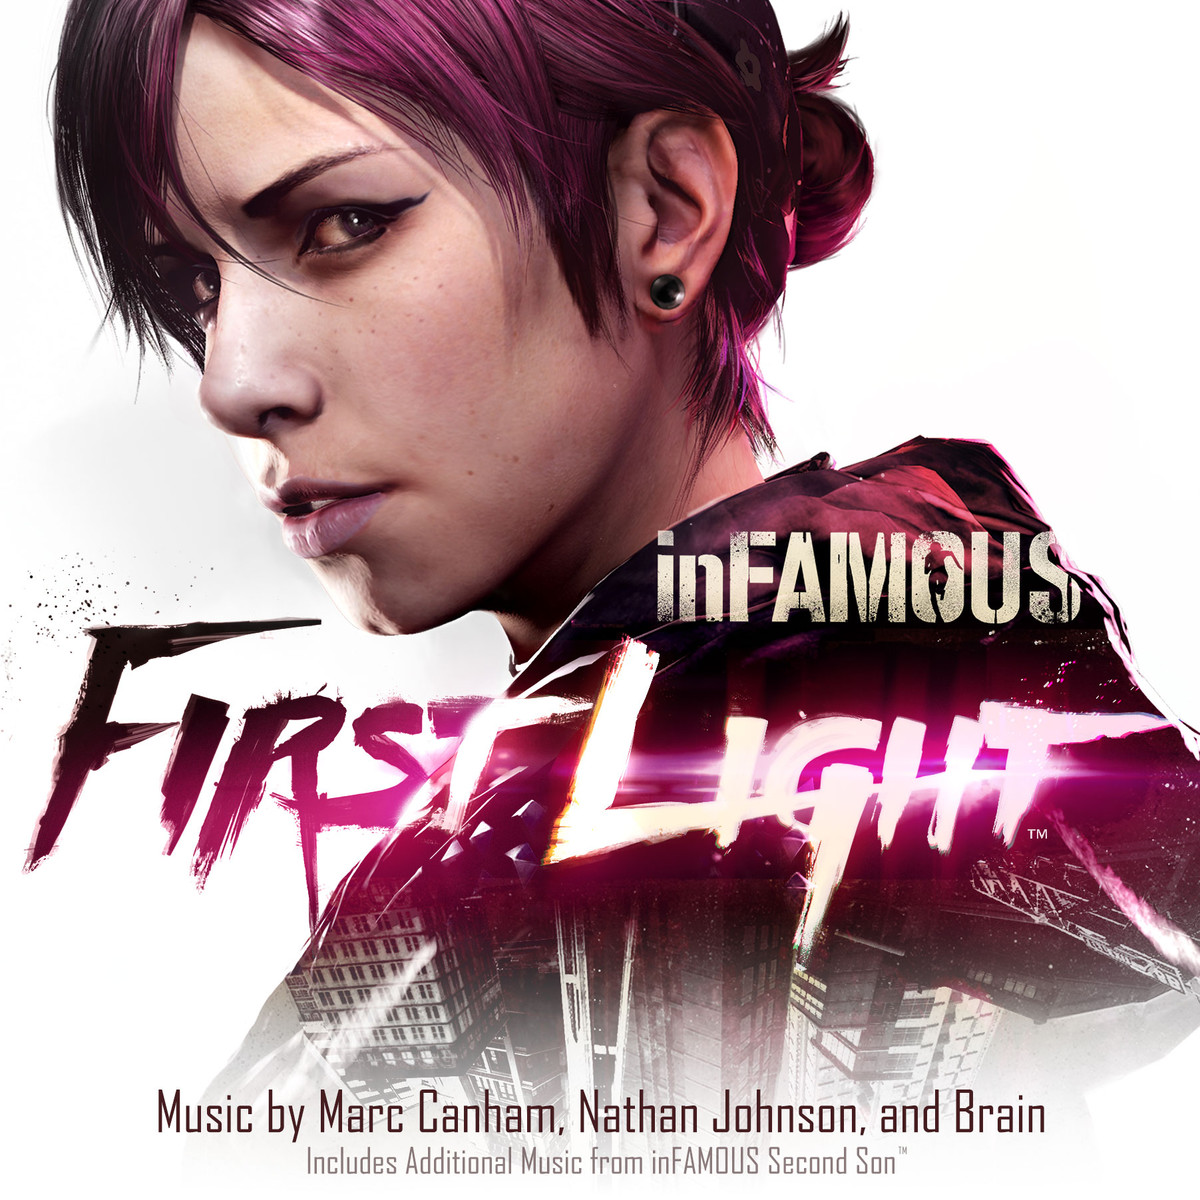 Infamous: First Light/Soundtrack